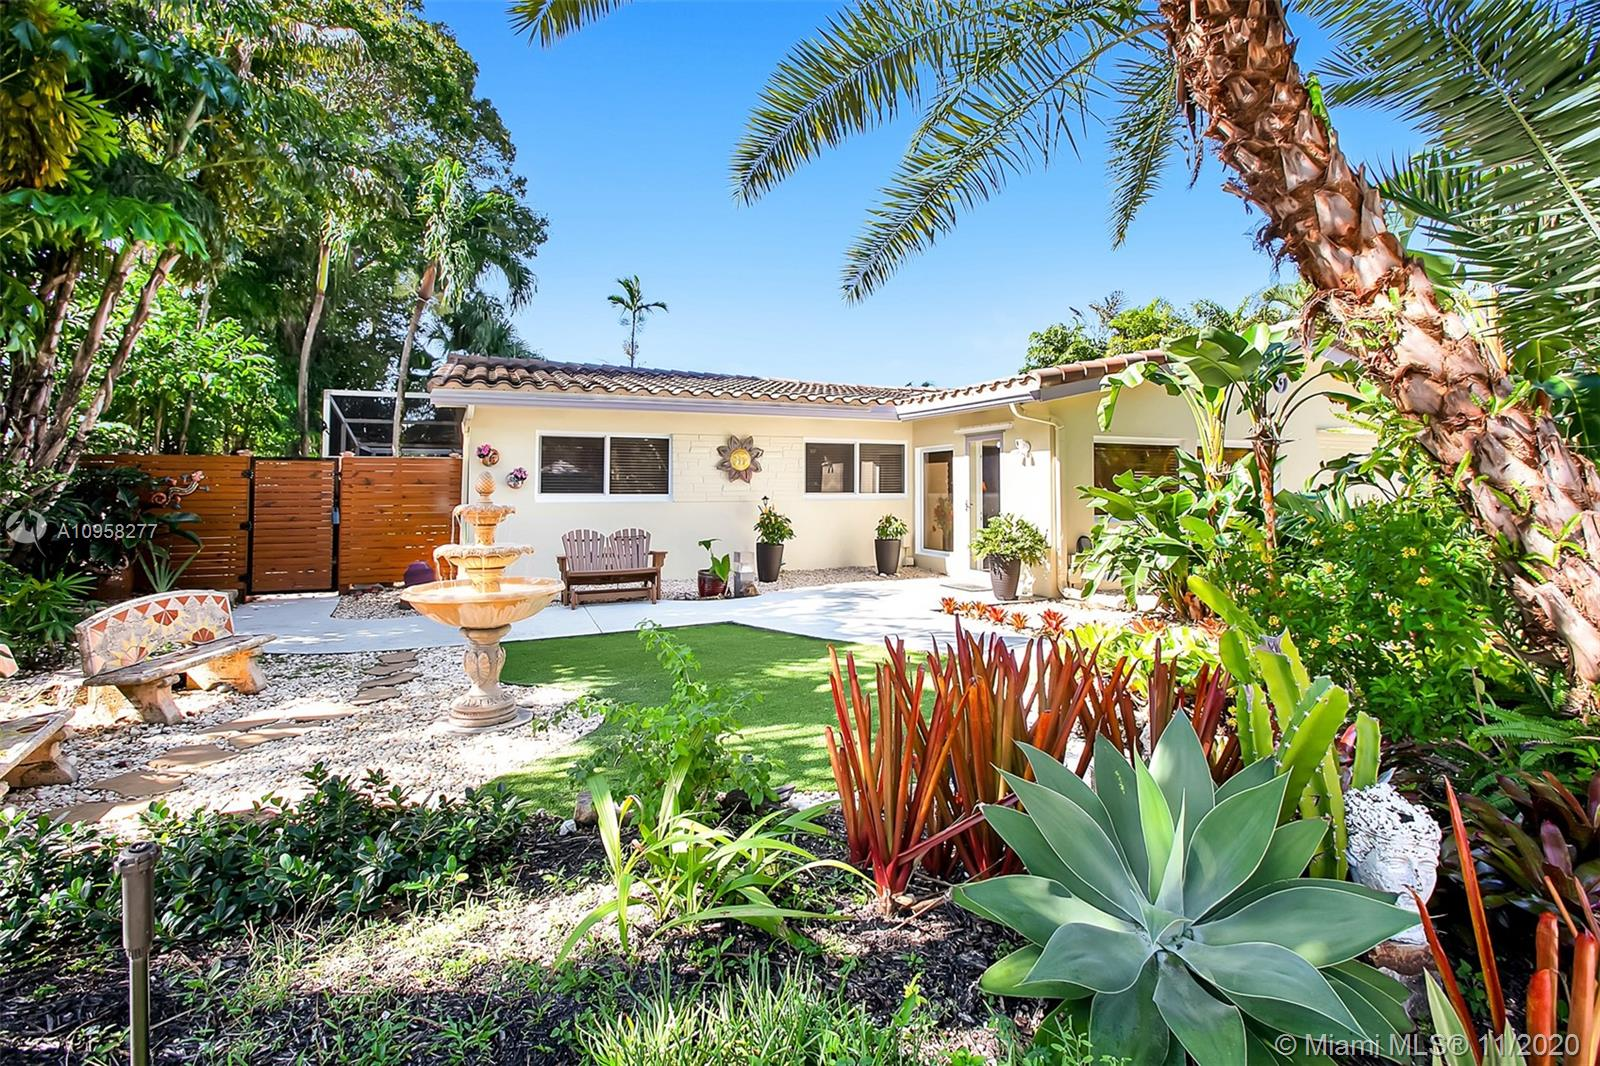 Magnificent Wilton Manors pool home with a beautifully landscaped courtyard that you might want to stay for a moment and enjoy. This home is an open concept living space with an imported Italian kitchen that includes a professional stainless steel chefs gas stove and oven, granite counter tops, backsplash and bar seating for six. There's a spacious living room and formal dining room with views of the pool. If you like outdoor dining, you will love the screened in patio, pool, hot tub and fully equipped outdoor kitchen and gas grill. The guest bathroom has been updated to perfection. The garage has been converted and could be a guest suite or home office. The property is fully updated with impact windows, doors, new electric panel, plumbing, newer roof and a propane generator.  A Must See!